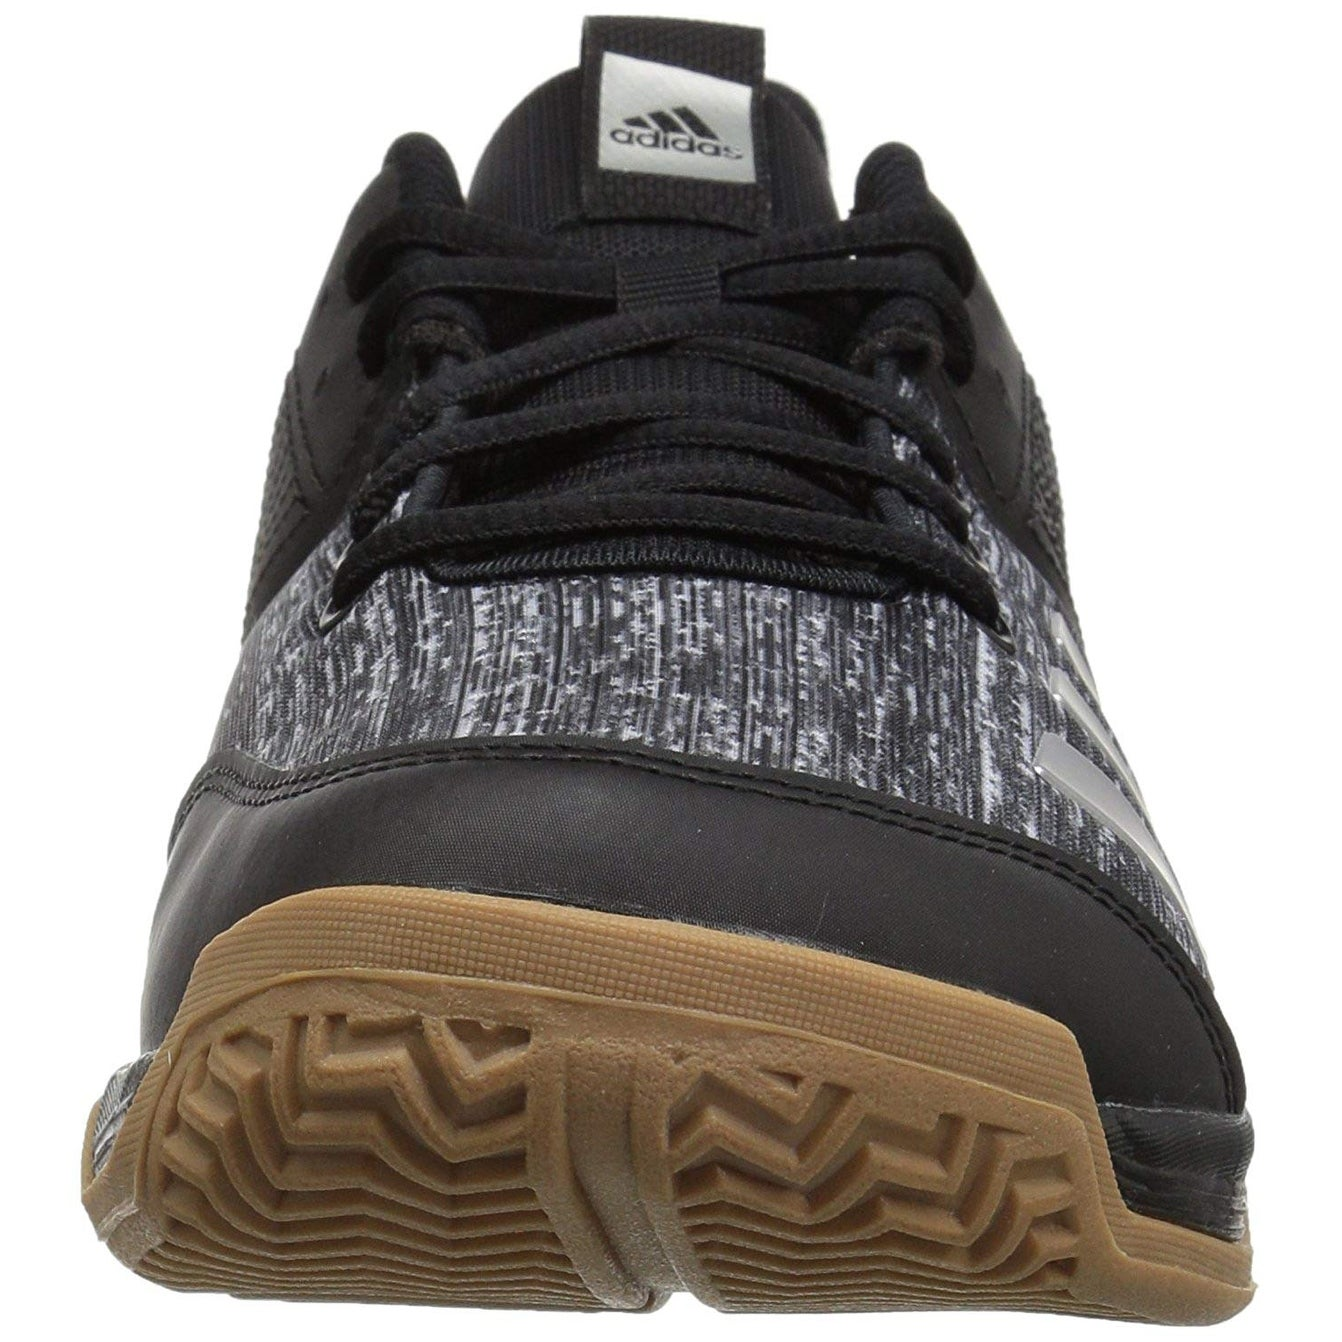 sports shoes 03edb 2f17d Shop adidas Originals Womens Ligra 6 Volleyball Shoe - Free Shipping Today  - Overstock - 25462724